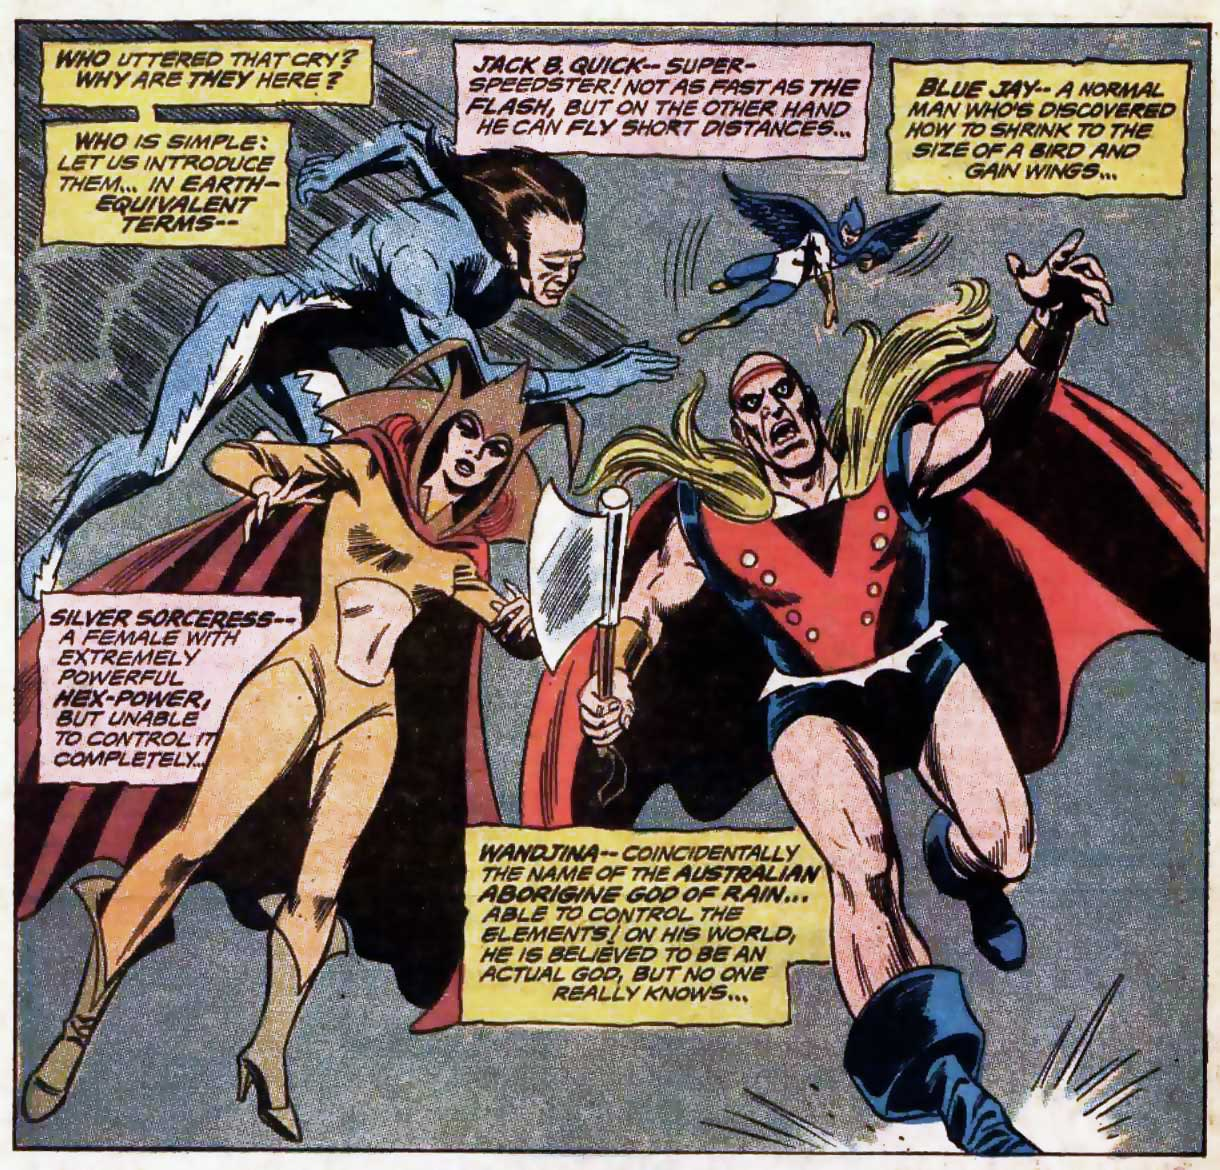 Champions of Angor from Justice League of America #87 by Mike Friedrich, Dick Dillin and Joe Giella